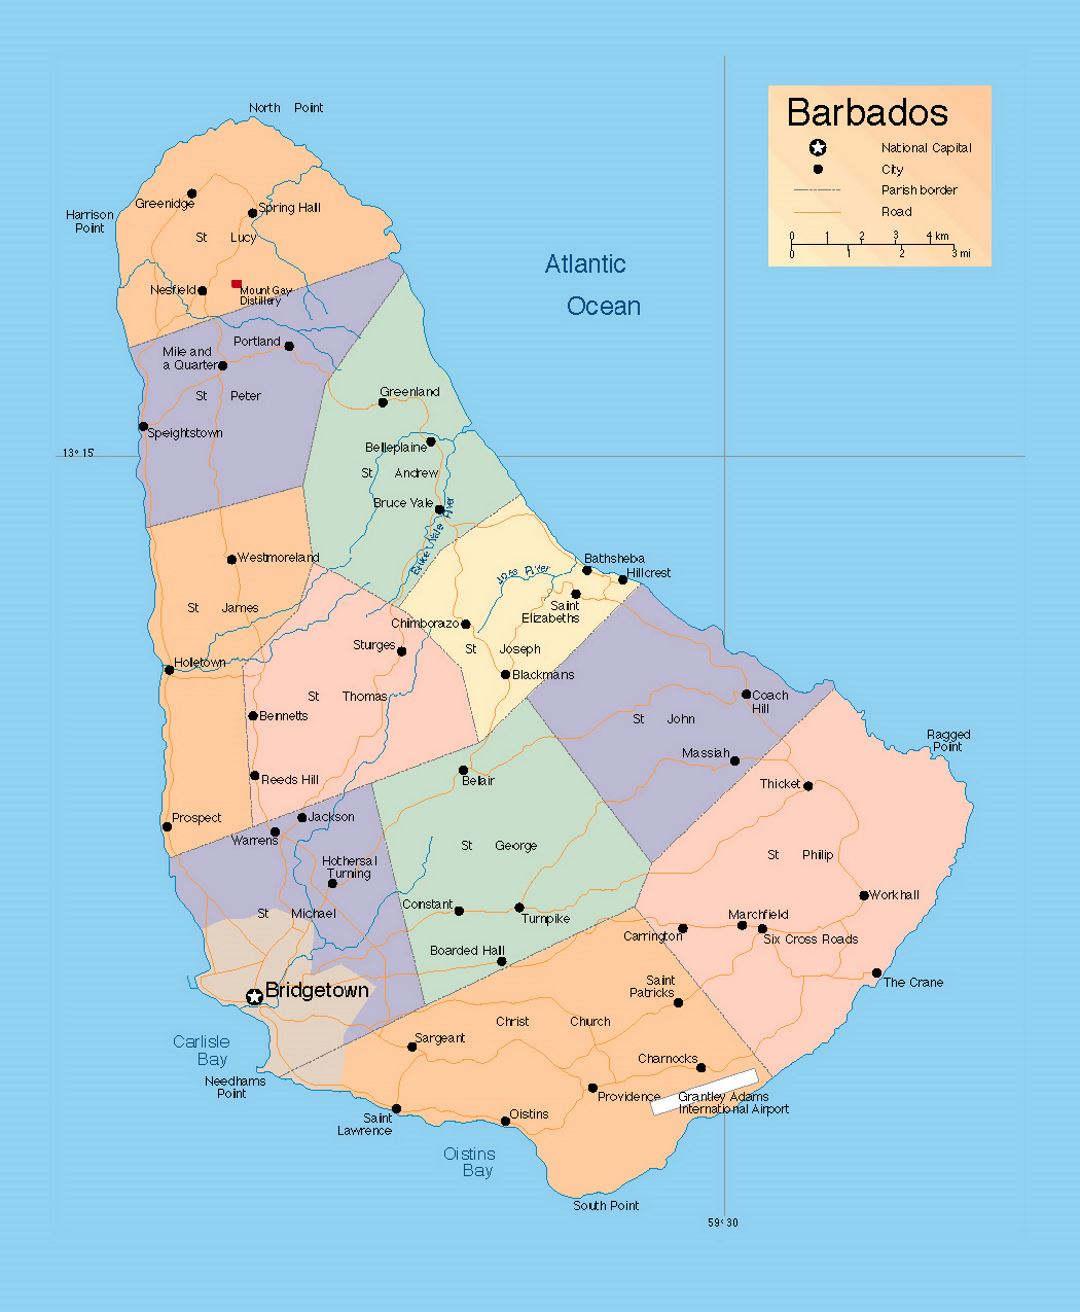 detailed administrative map of barbados with roads and cities  - detailed administrative map of barbados with roads and cities